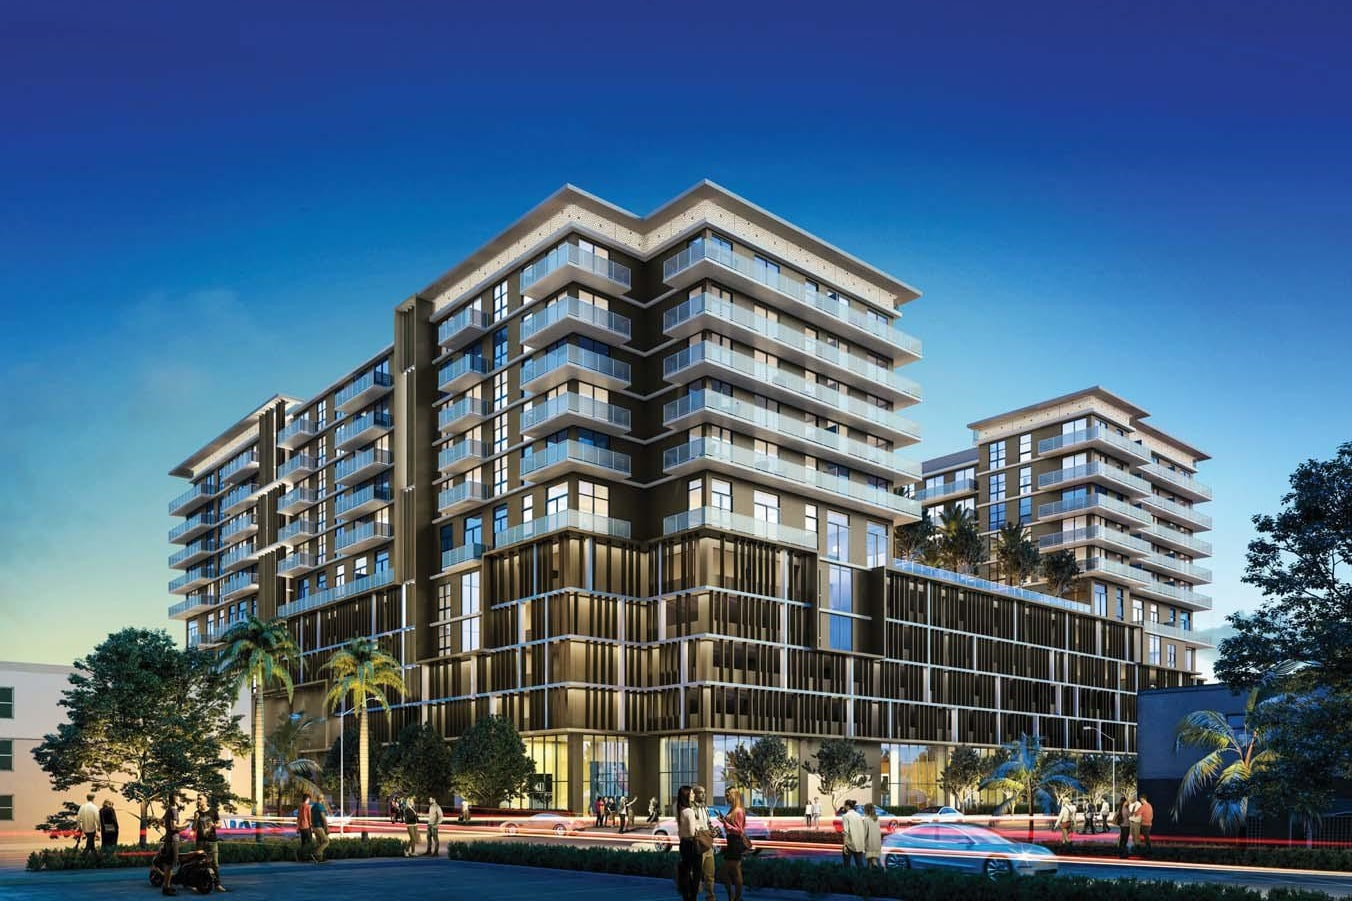 Alta Developers and Bacardi Foundation's South Miami Town Square Approved In South Miami